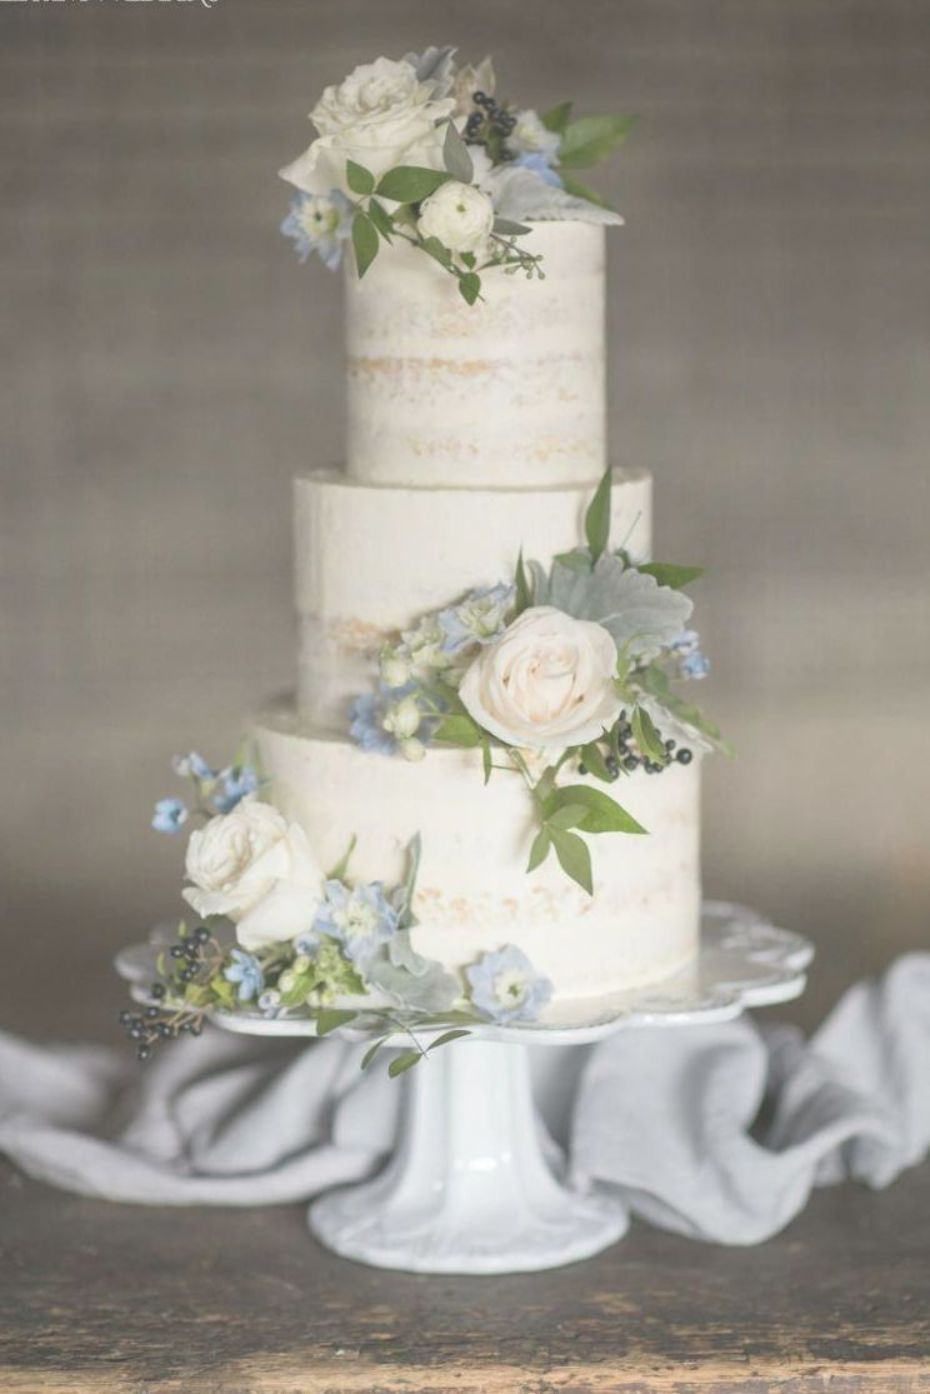 Rustic Wedding Cake With Real Flowers Something Blue Wedding Theme With Greenery Wedding Cake Flowers Blue Wedding Cake Dusty Blue Green Wedding Cake